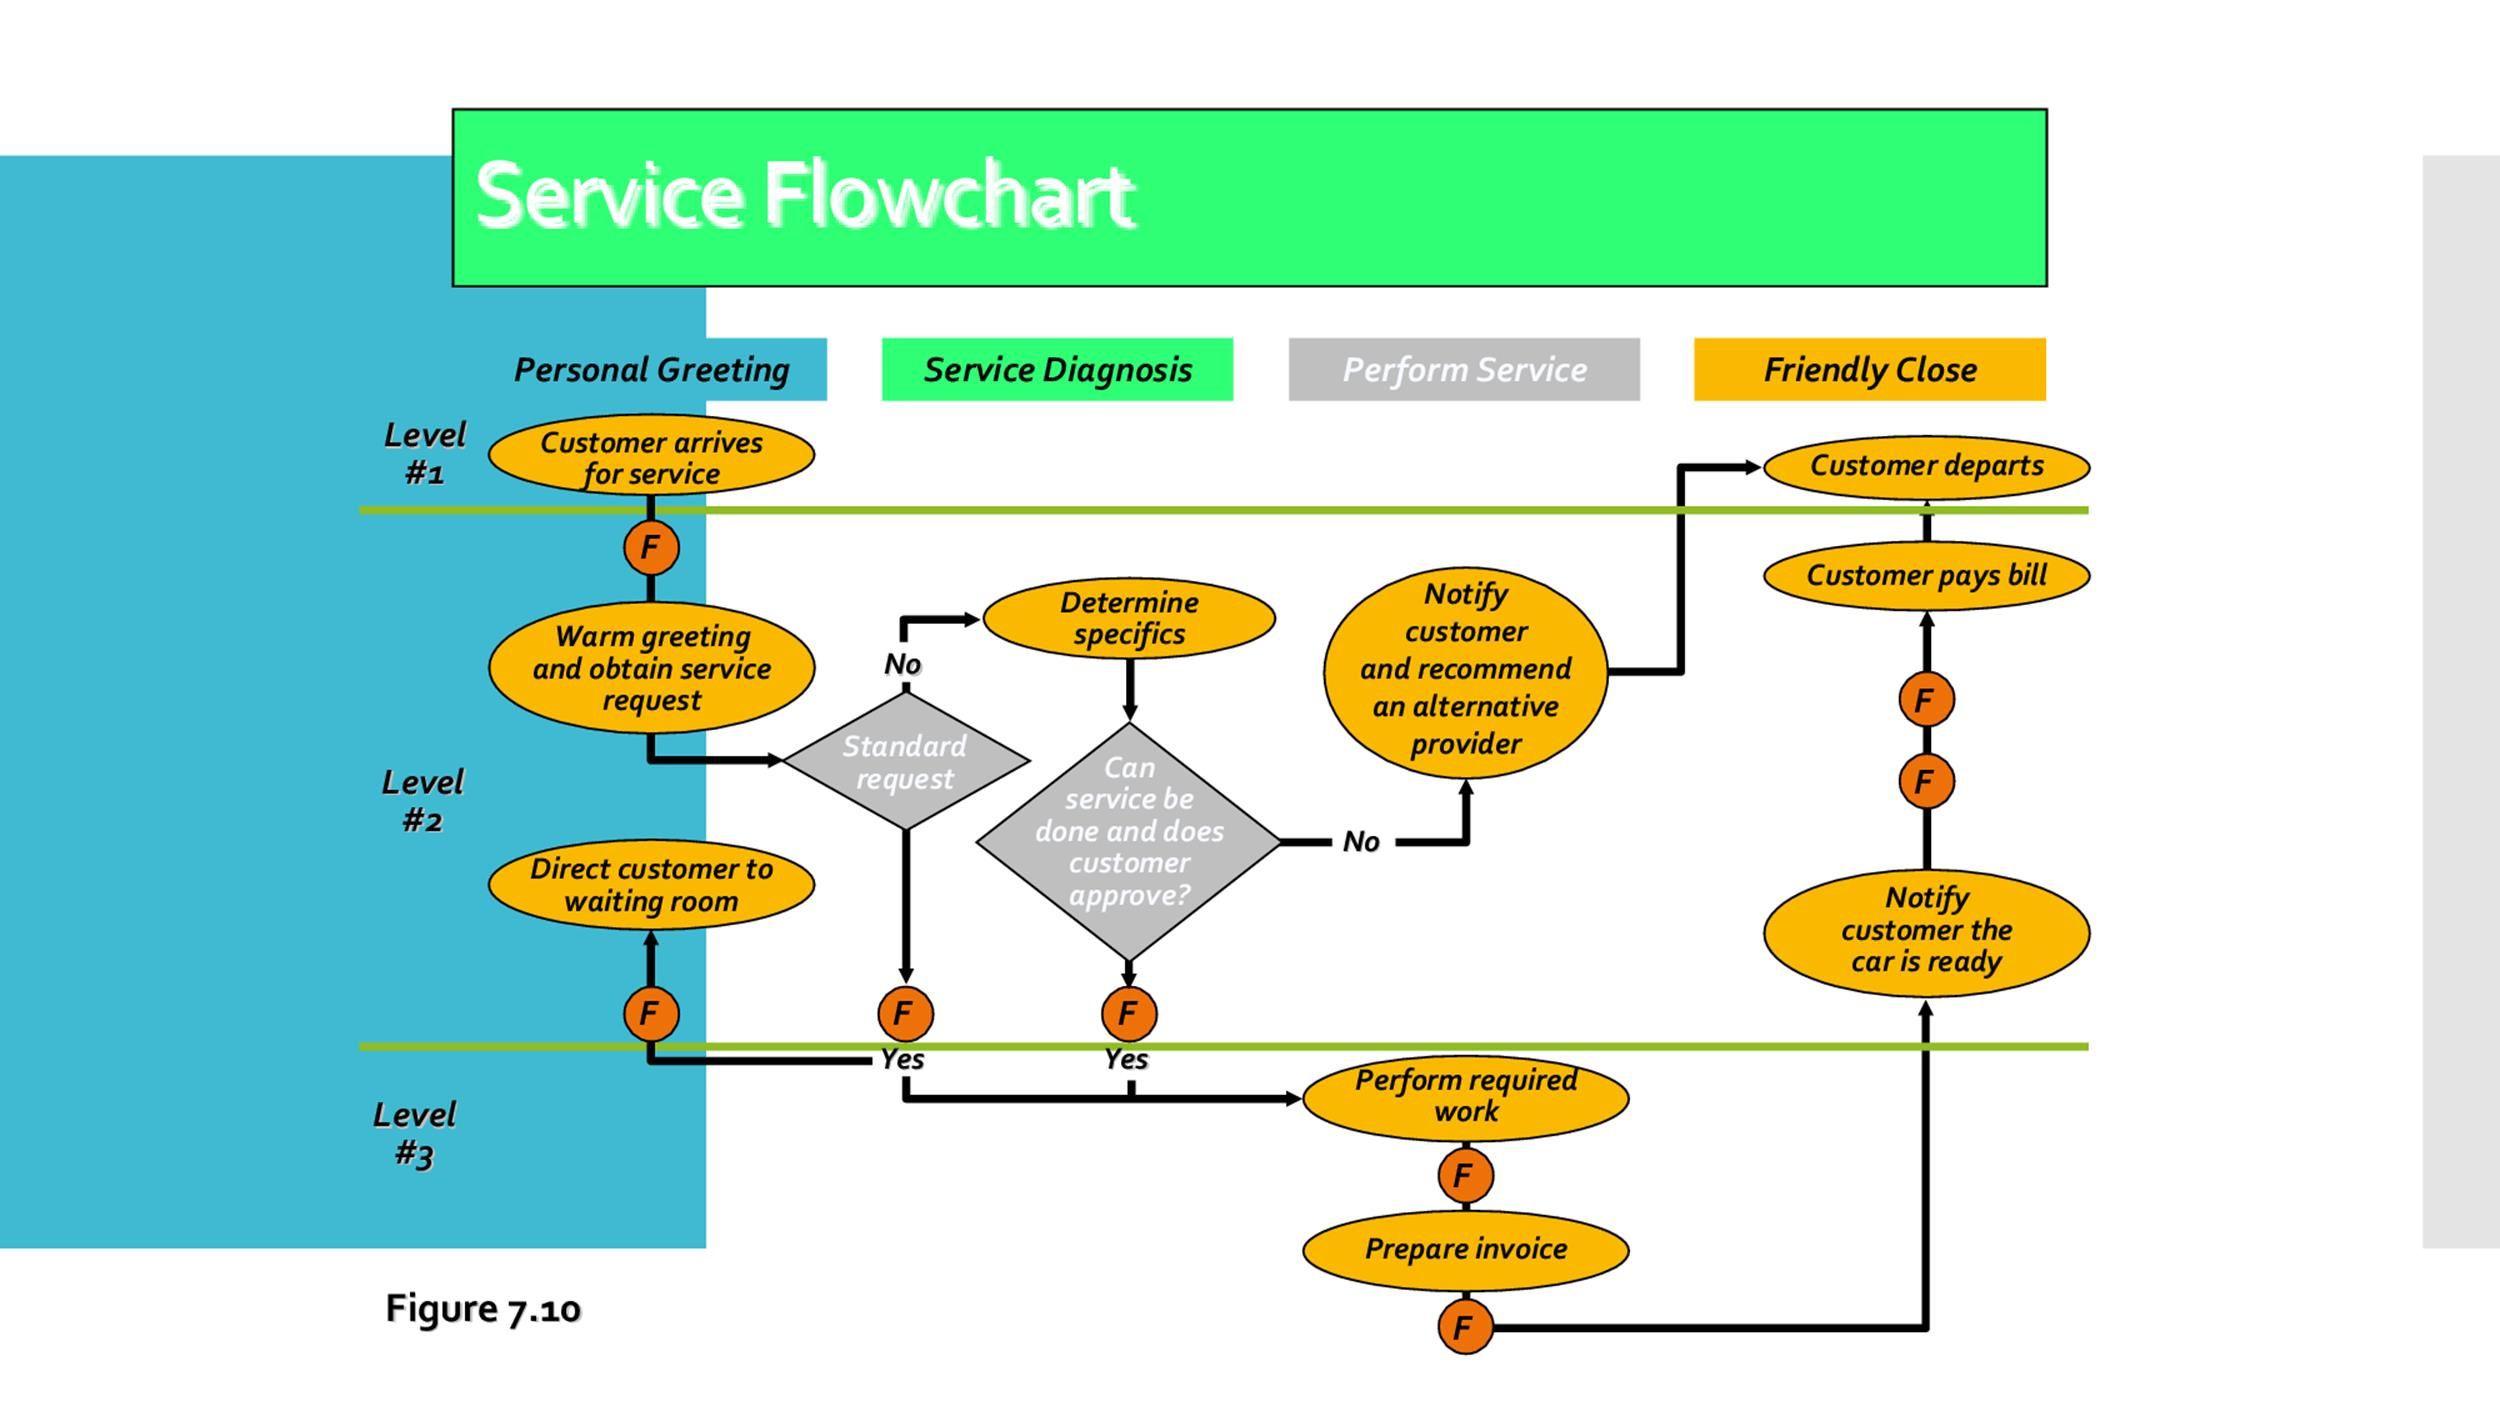 005 Fearsome Proces Flow Chart Template Excel Download Image  FreeFull